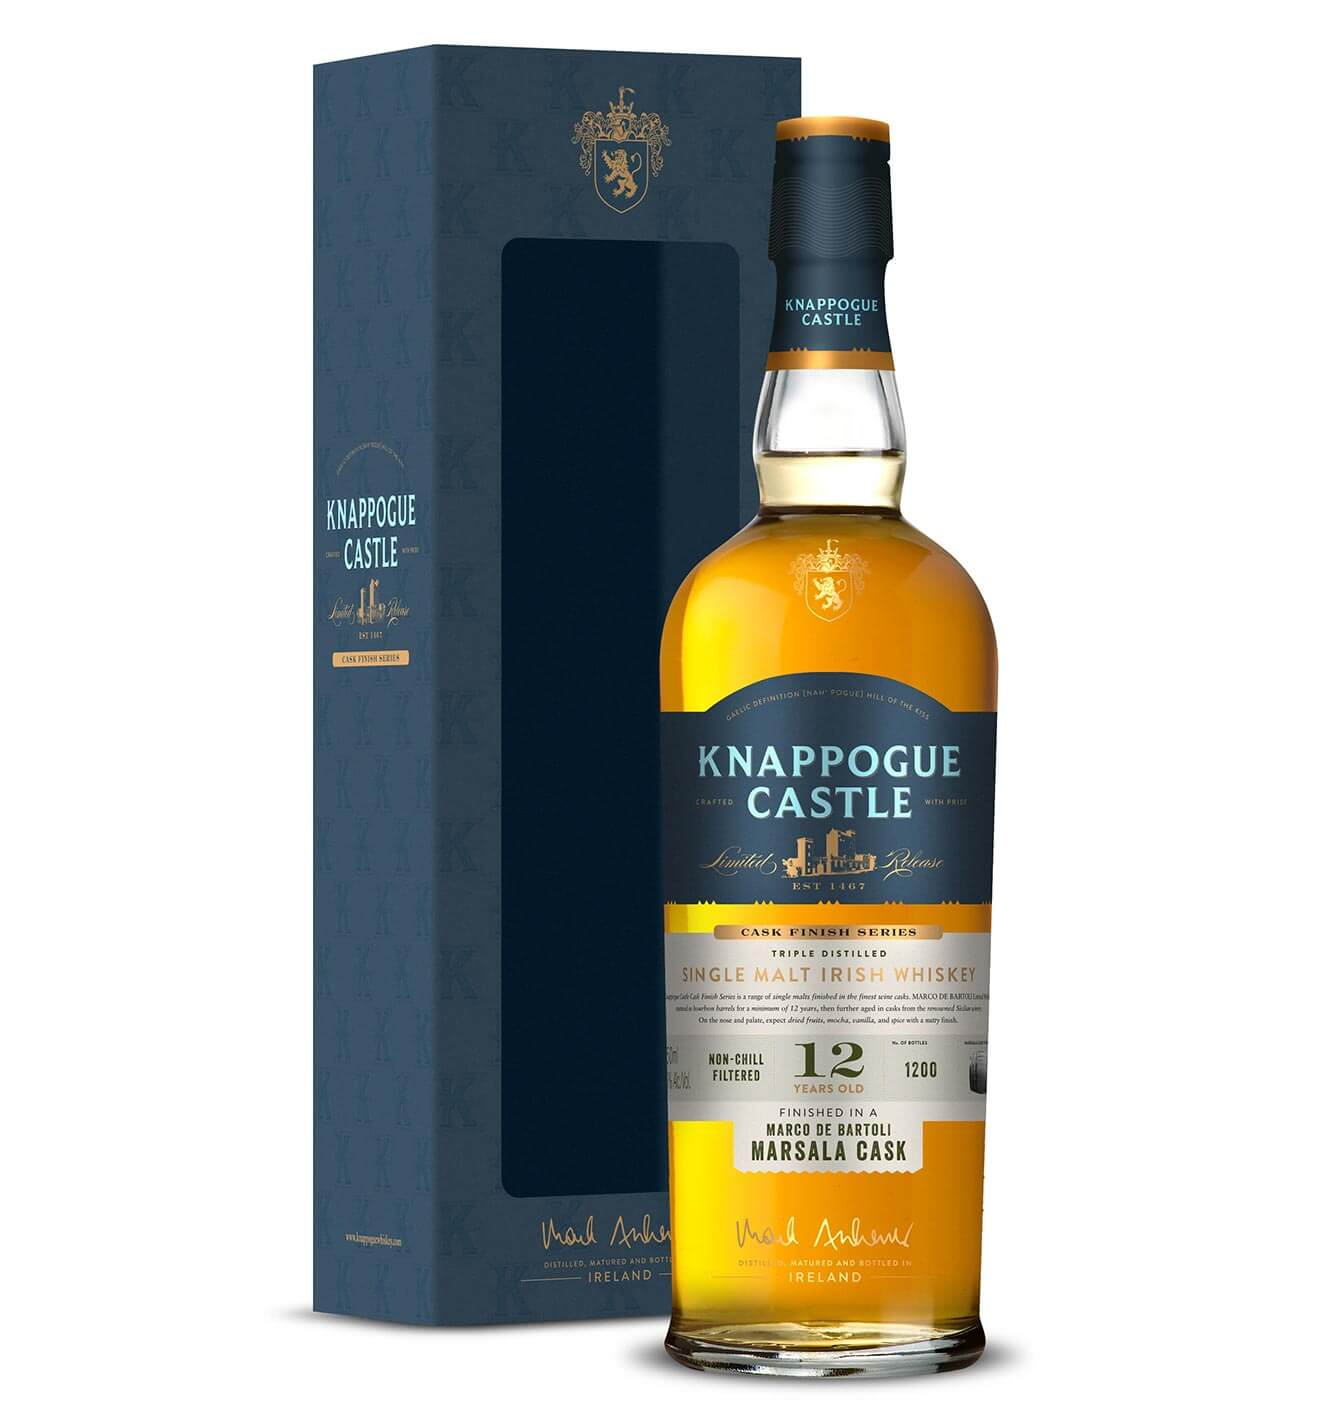 Knappogue Castle 12 Year Old Marsala Cask, packaging and bottle on white